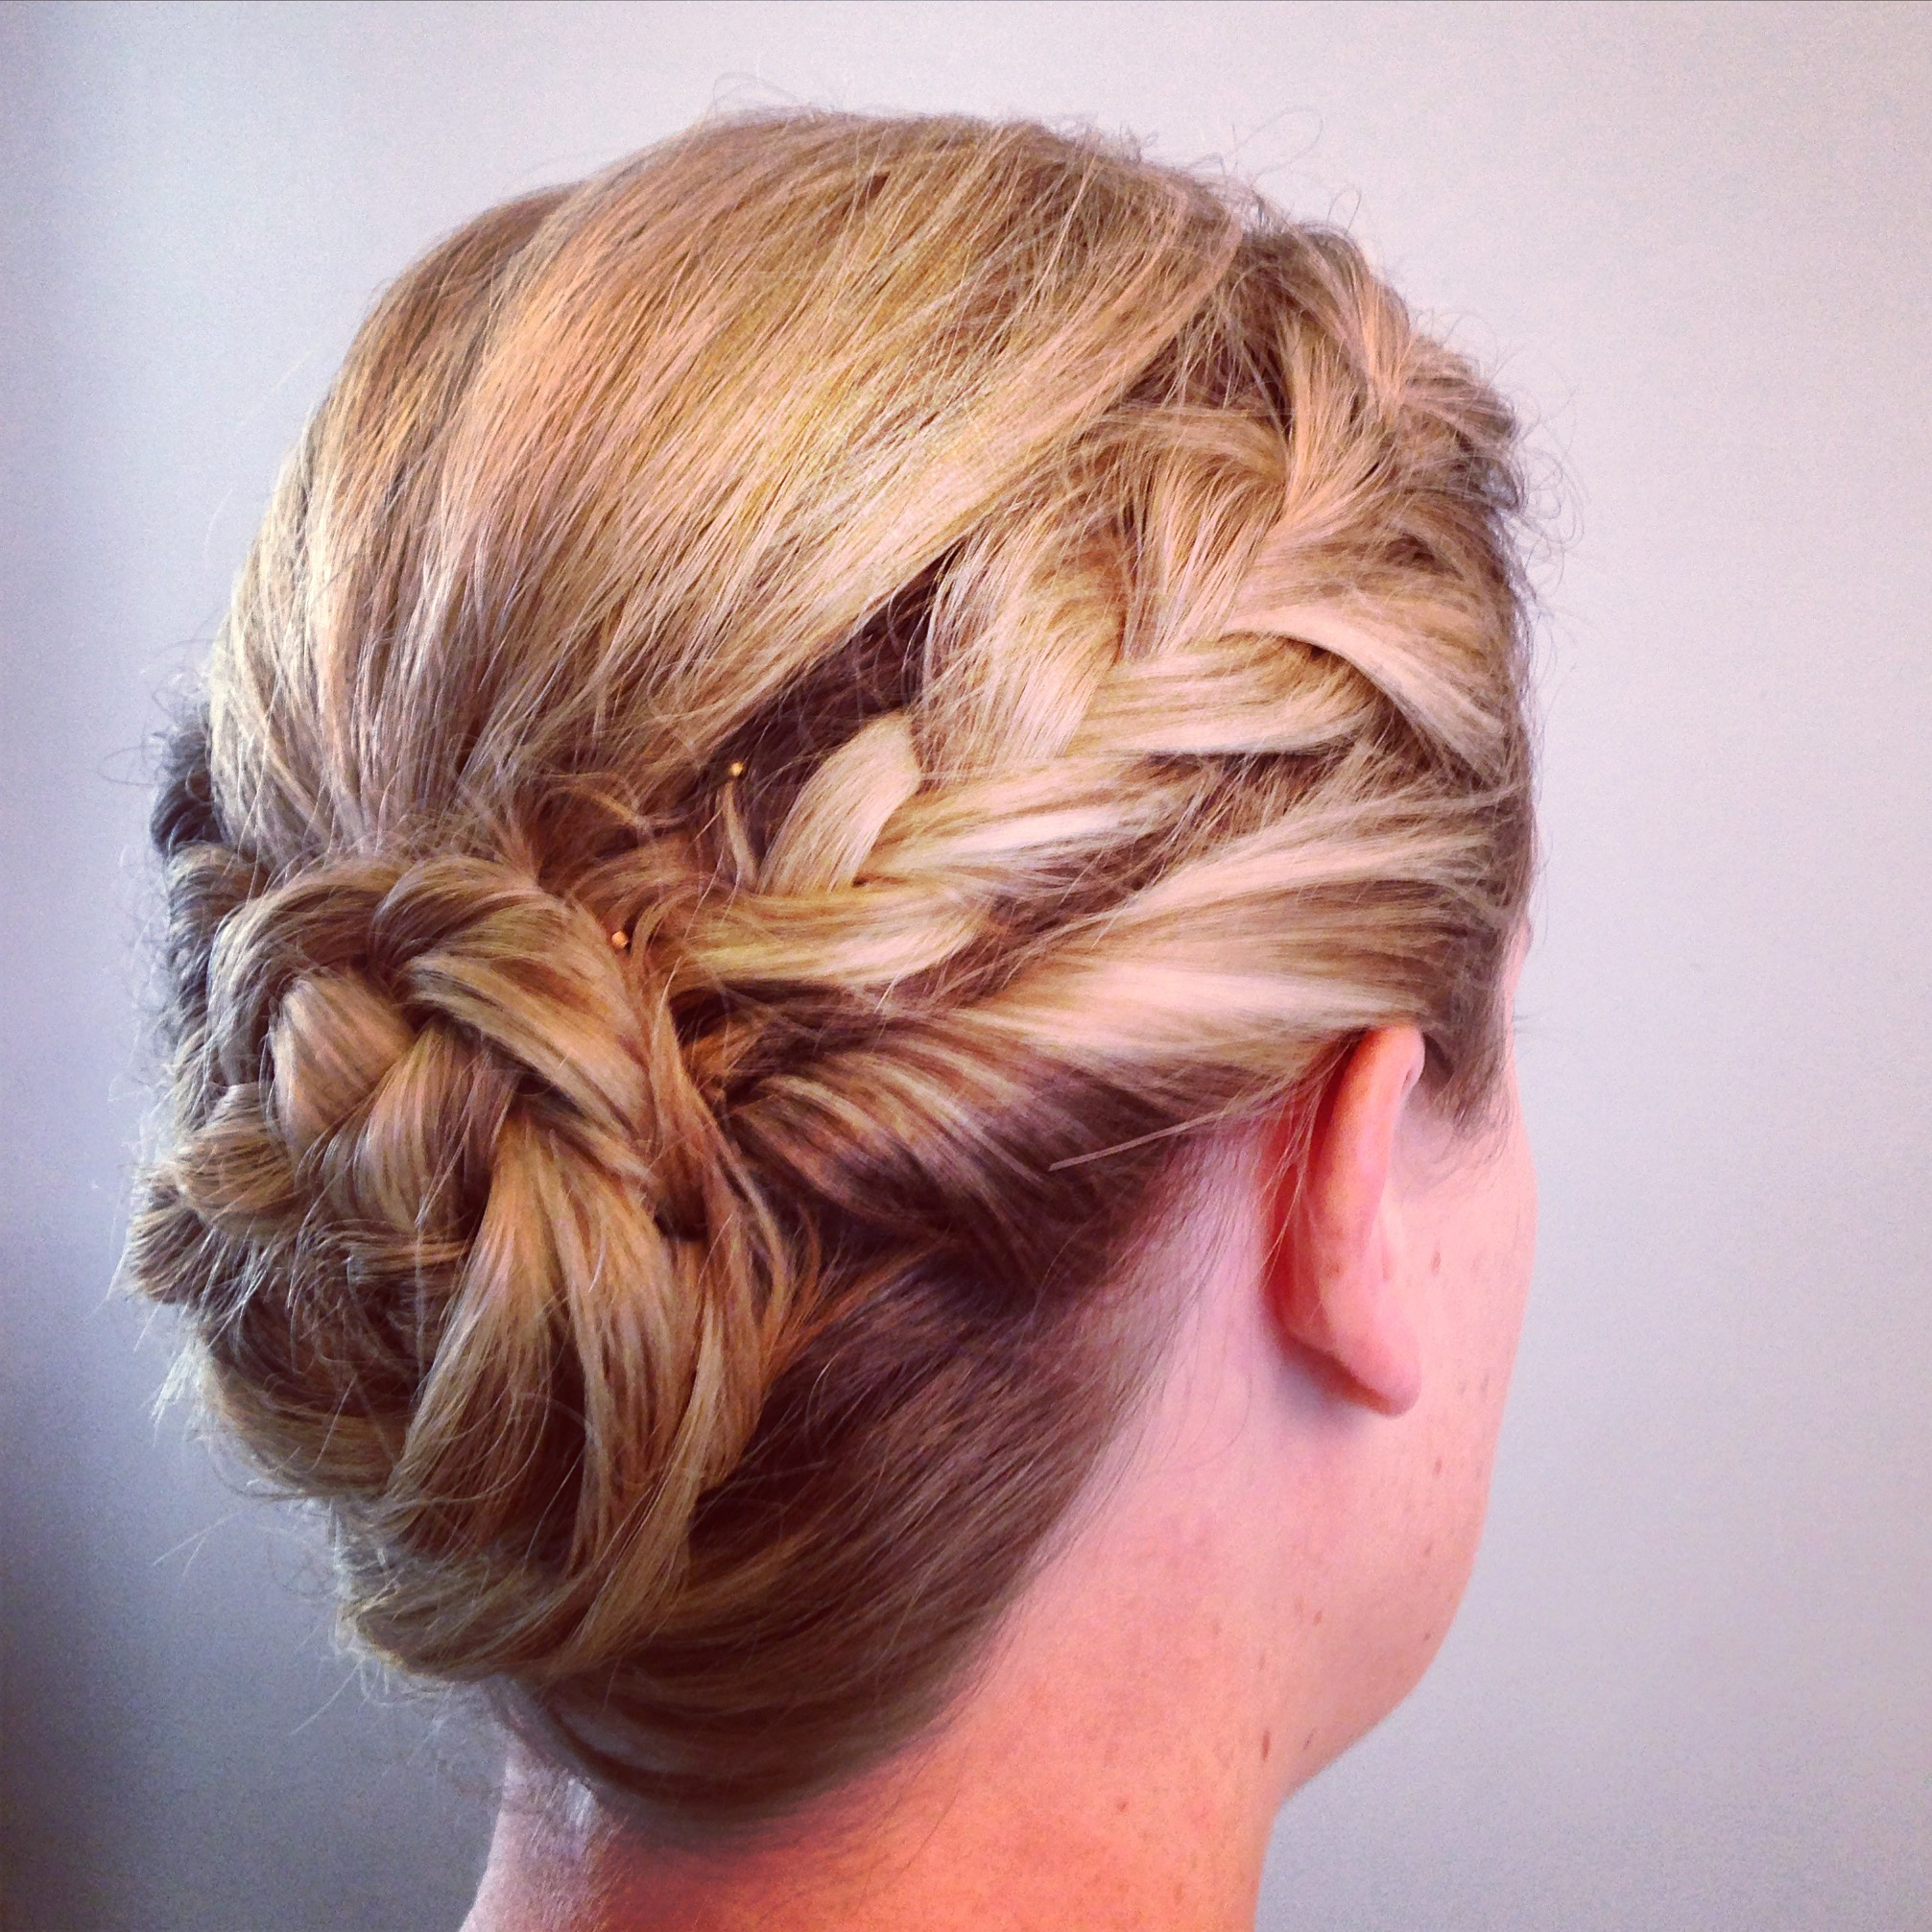 - Elegant Updo - a timeless look for special occasions.